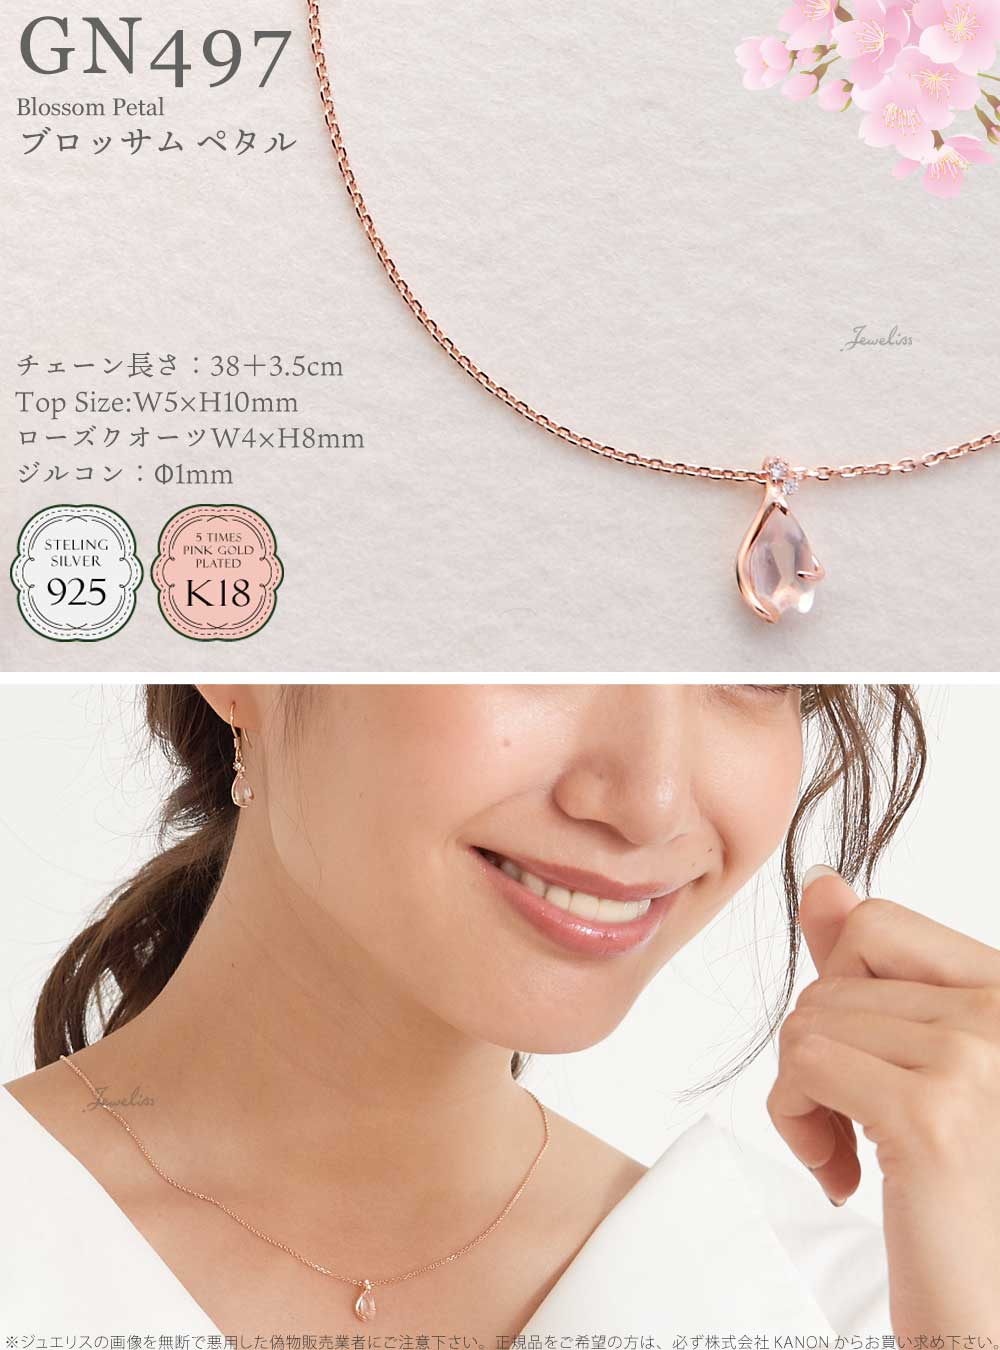 Jeweliss ジュエリス 桜の花びら ローズクオーツ 10月 誕生石 ネックレス